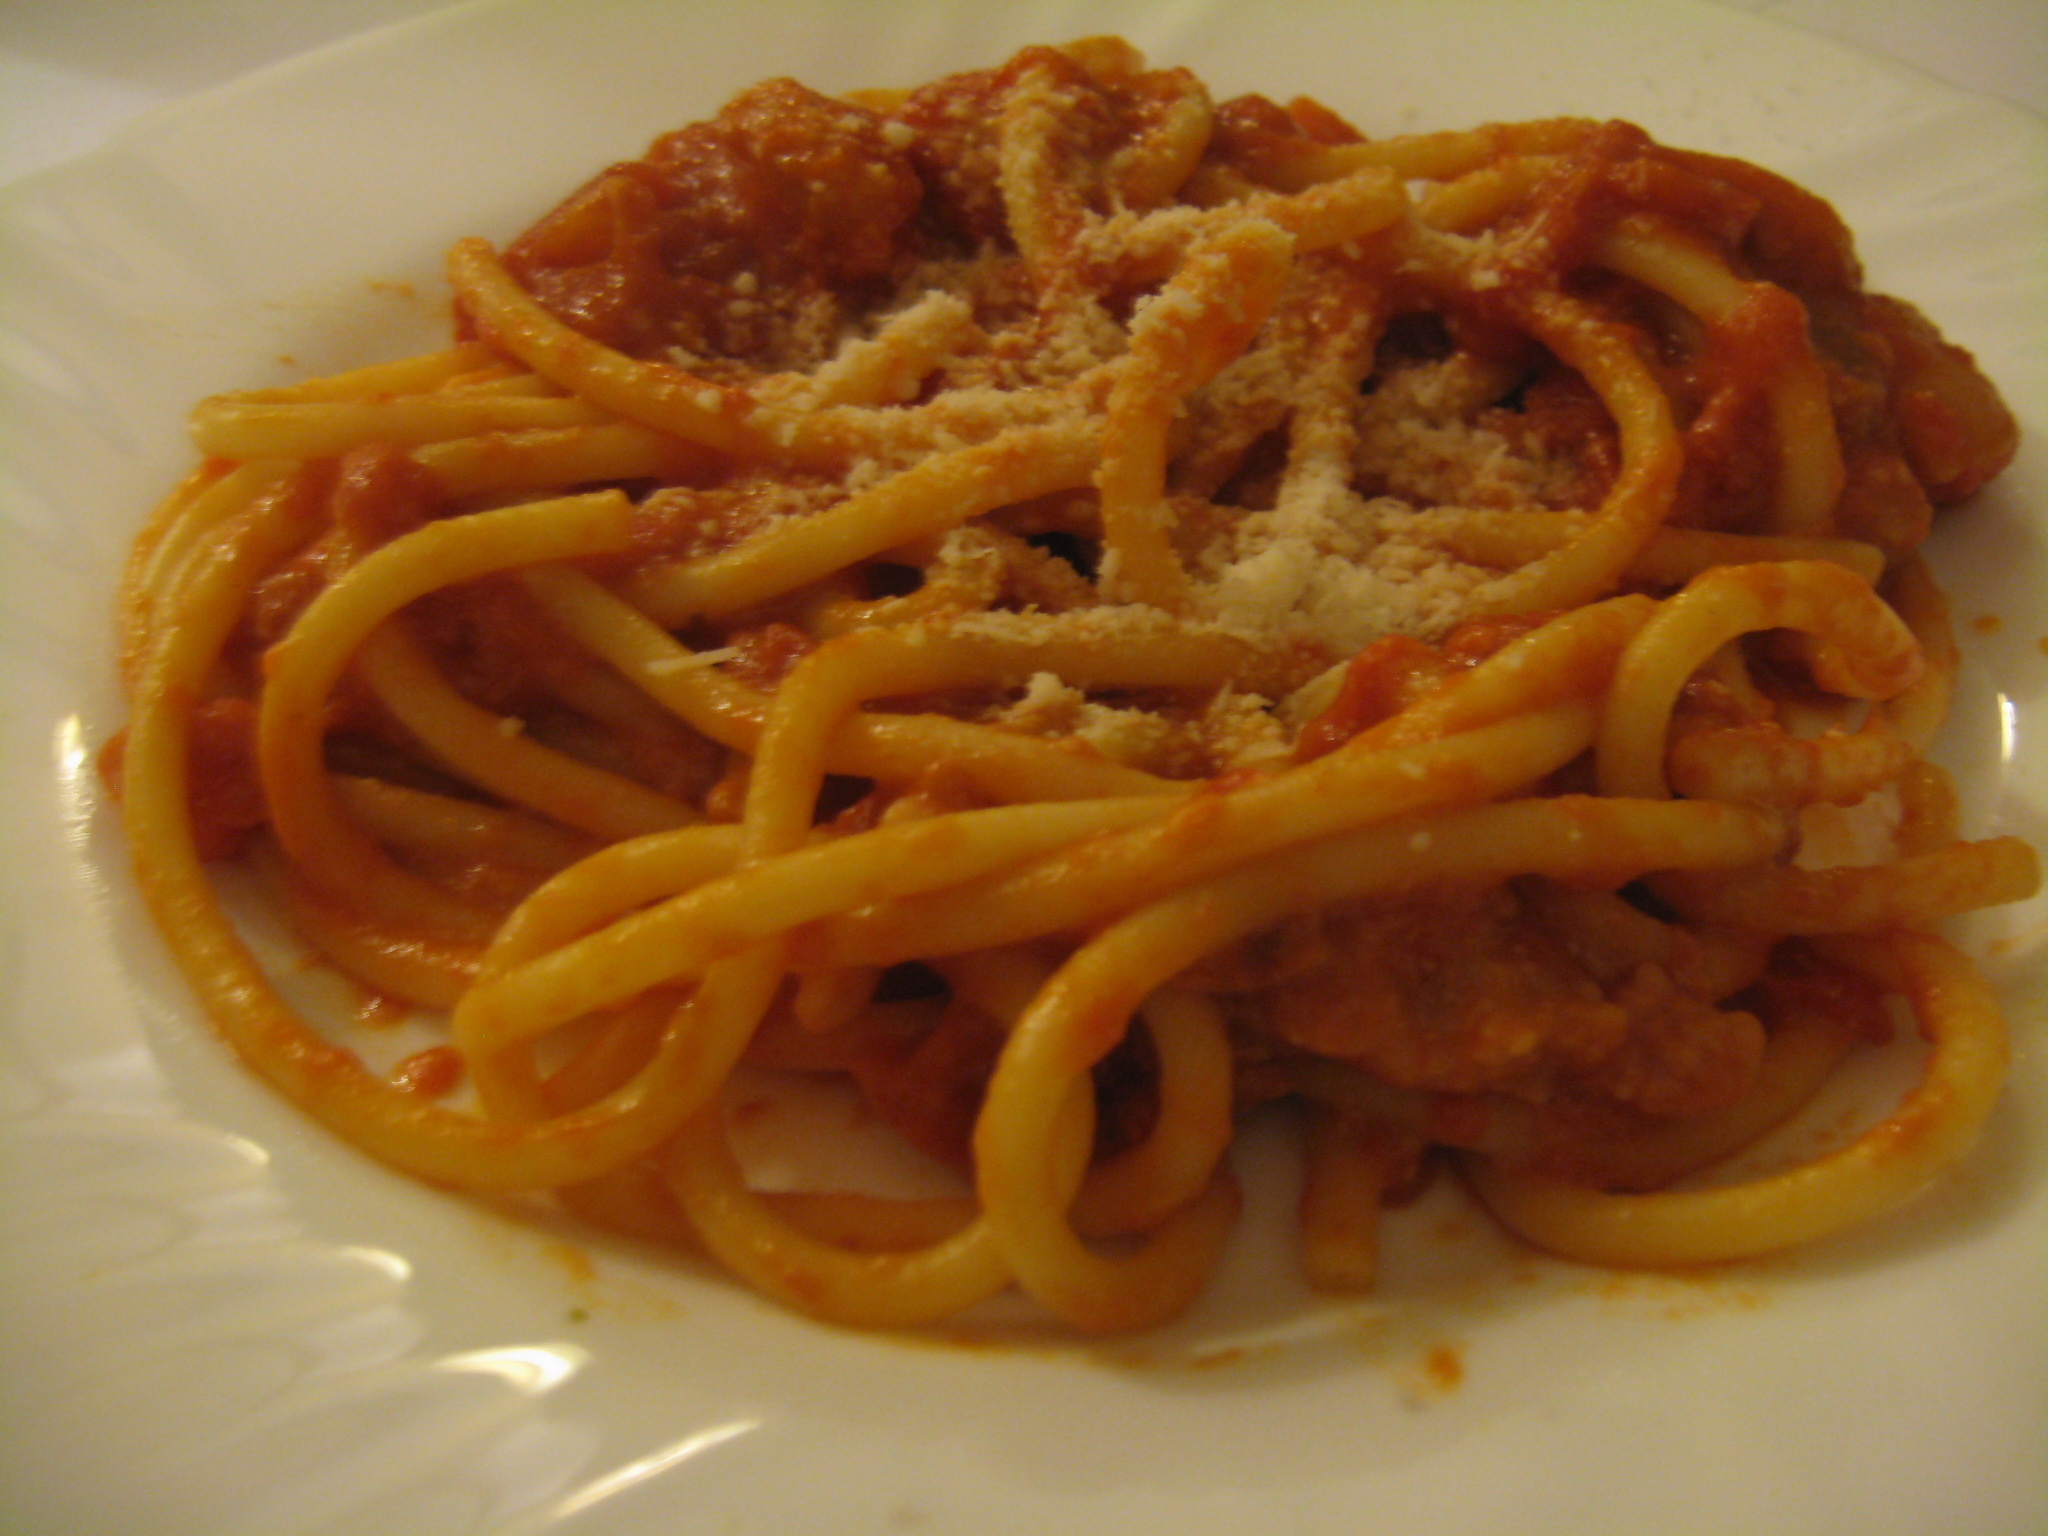 Bucatini all'amatriciana: at the Heart of Roman Cuisine - Roman ...